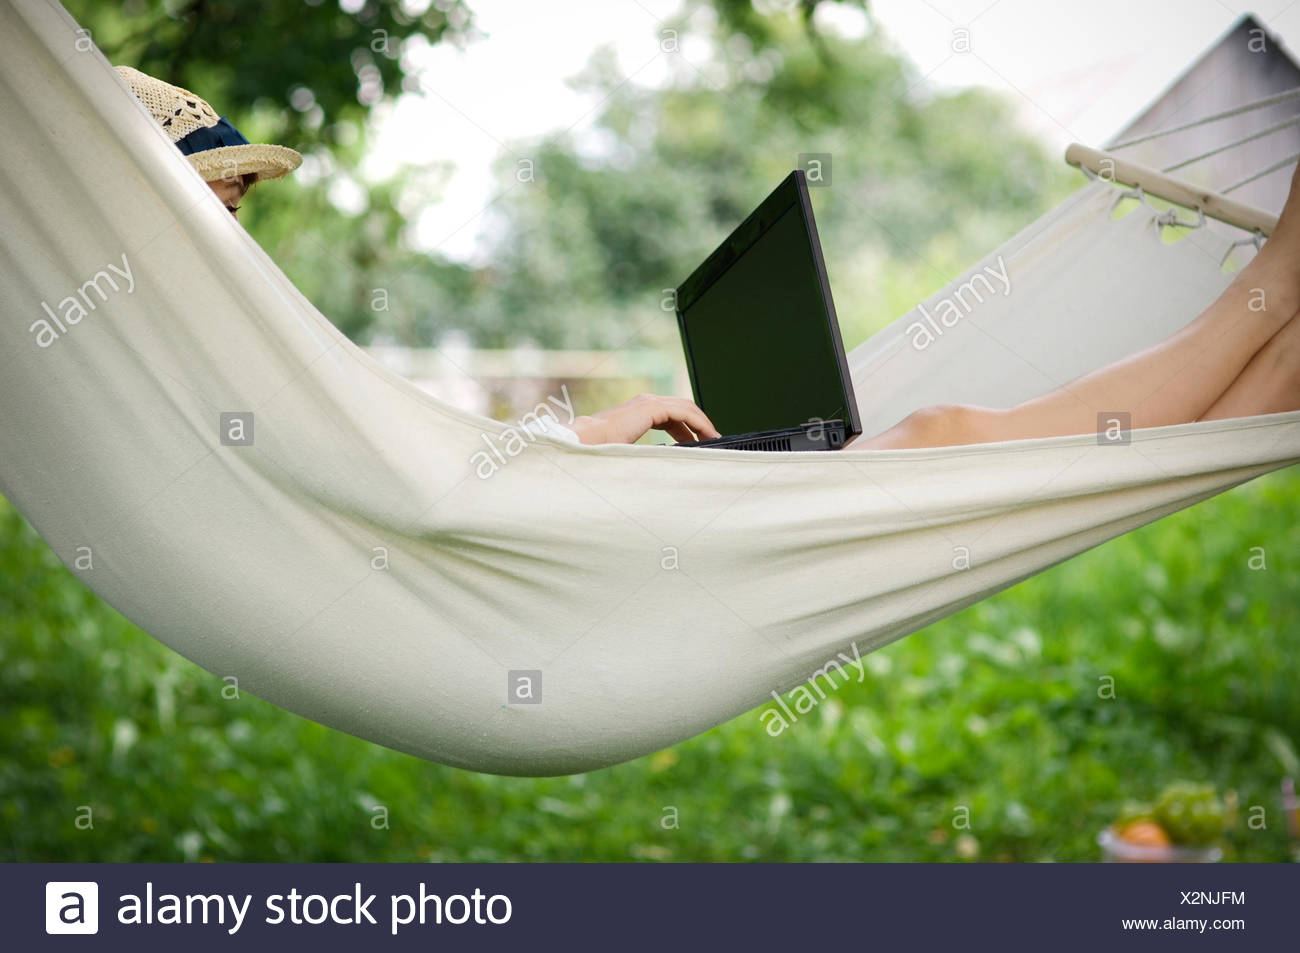 Young woman working on hammock with laptop, Debica, Poland. - Stock Image